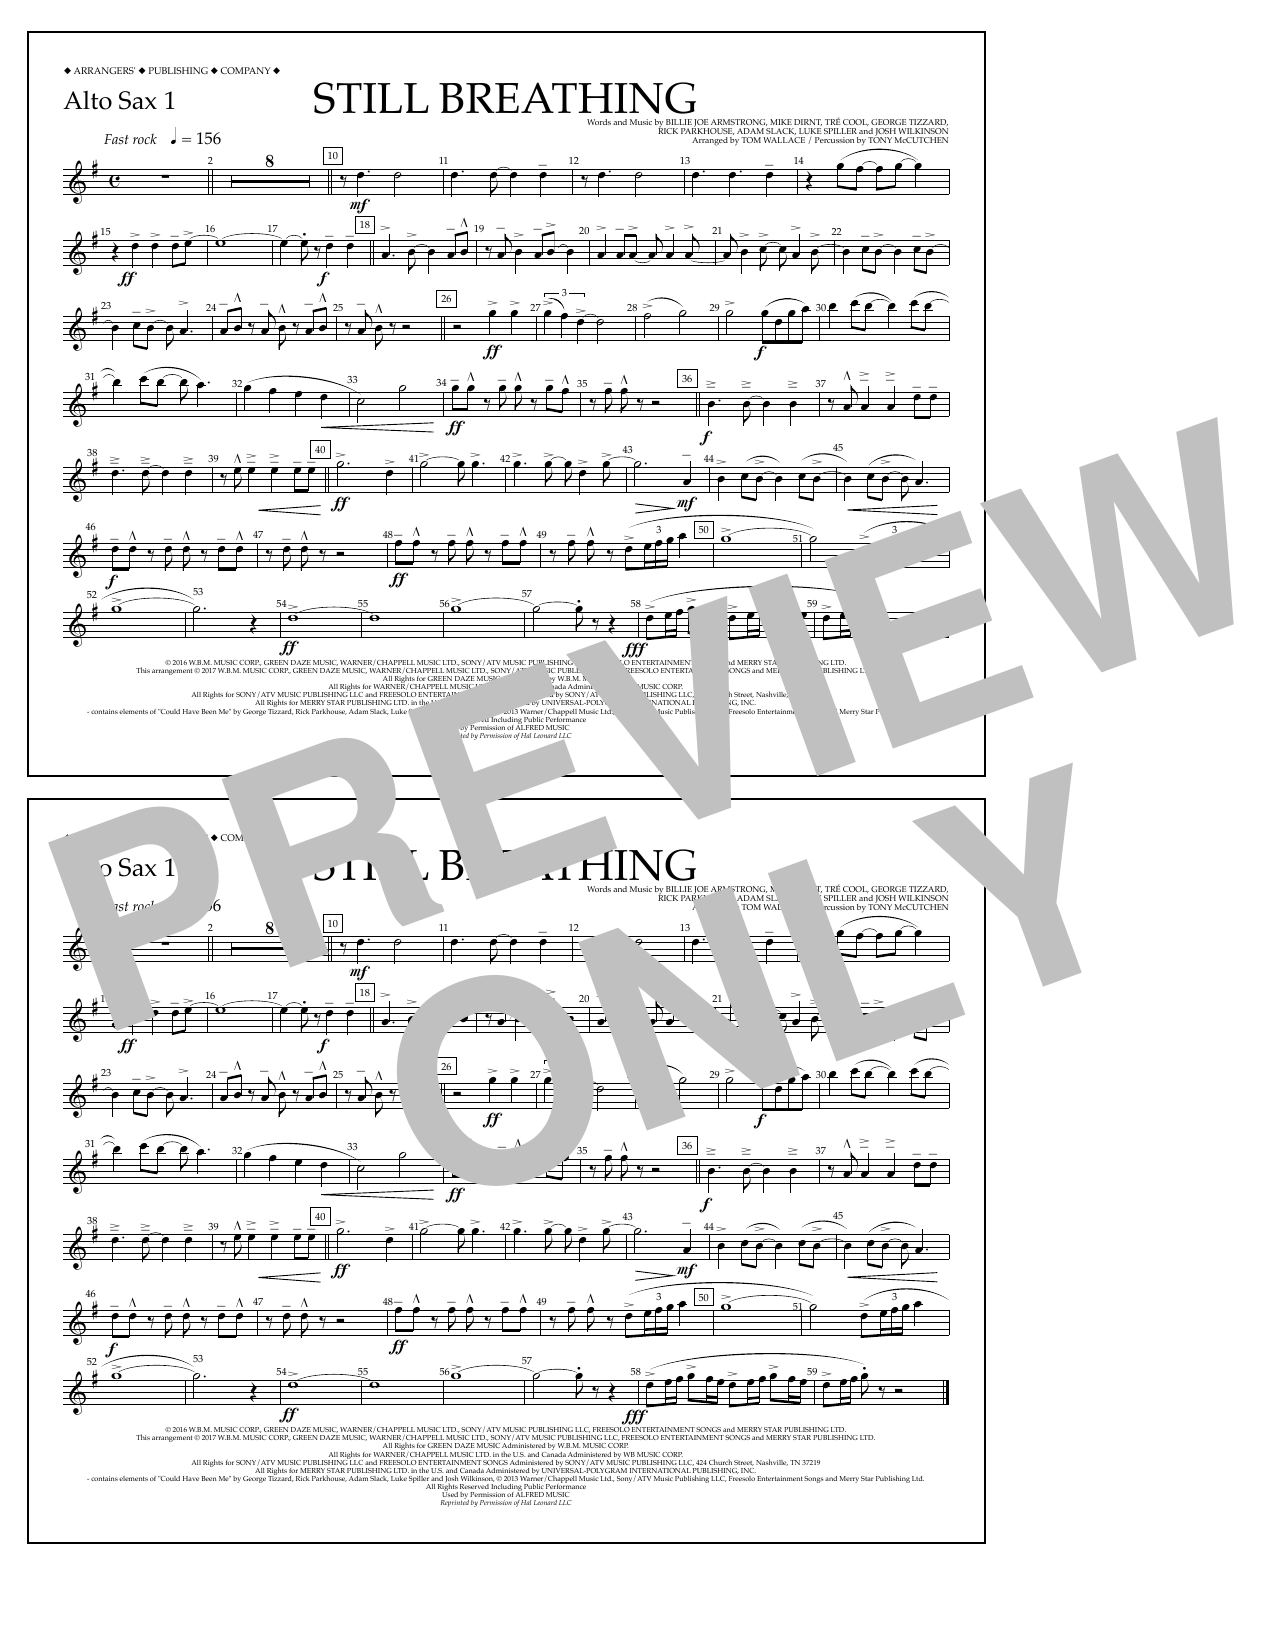 Still Breathing - Alto Sax 1 Sheet Music